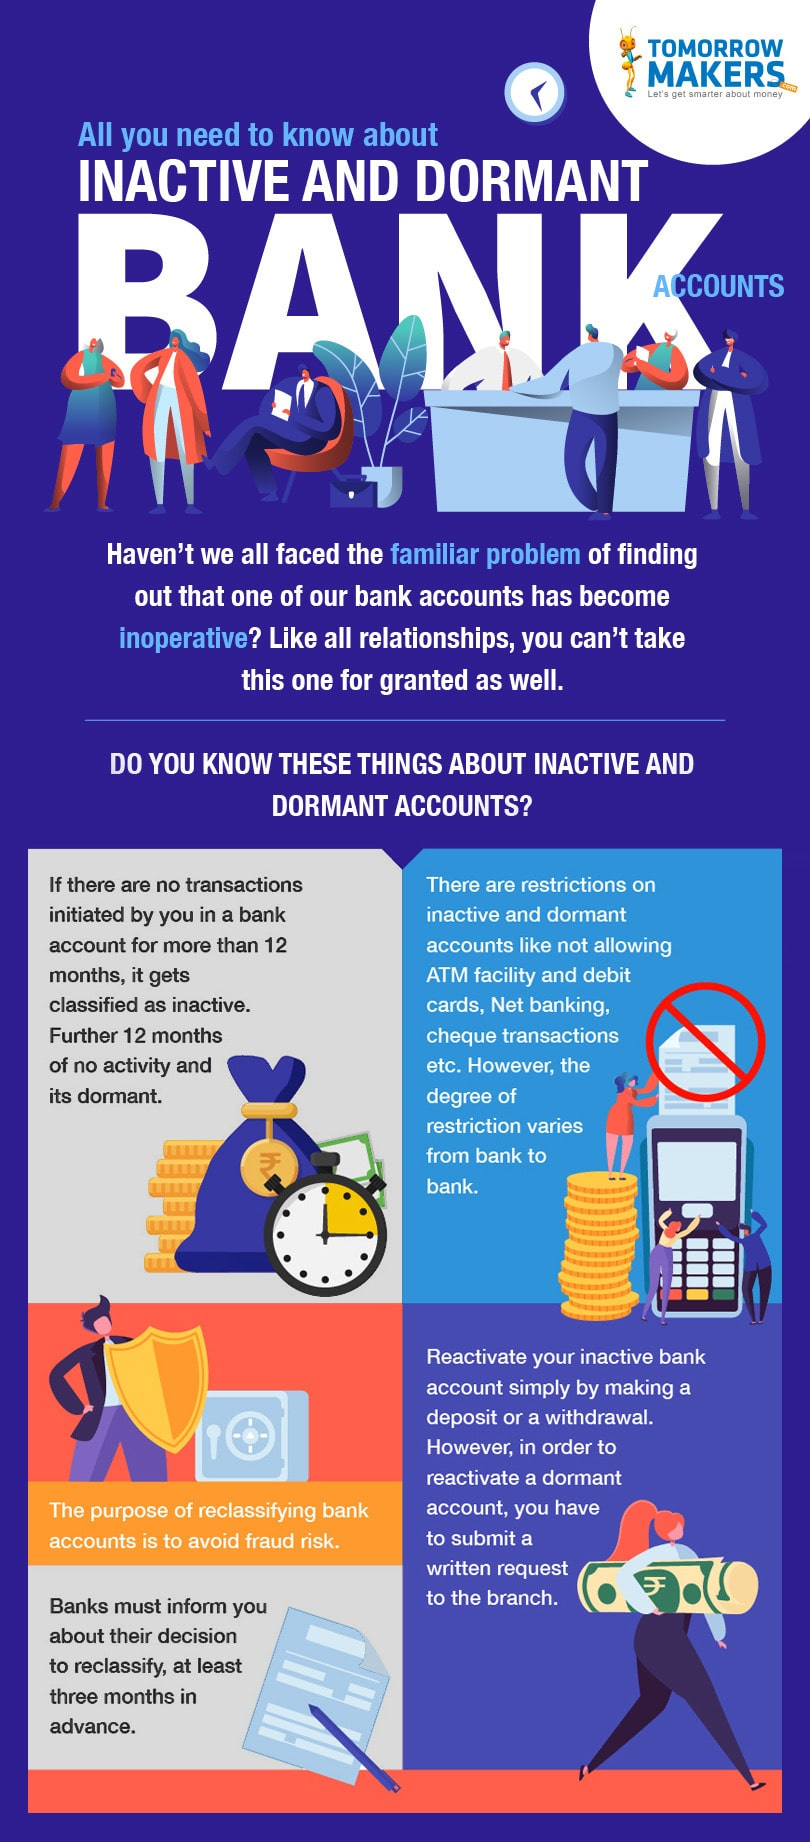 All you need to know about inactive and dormant bank accounts